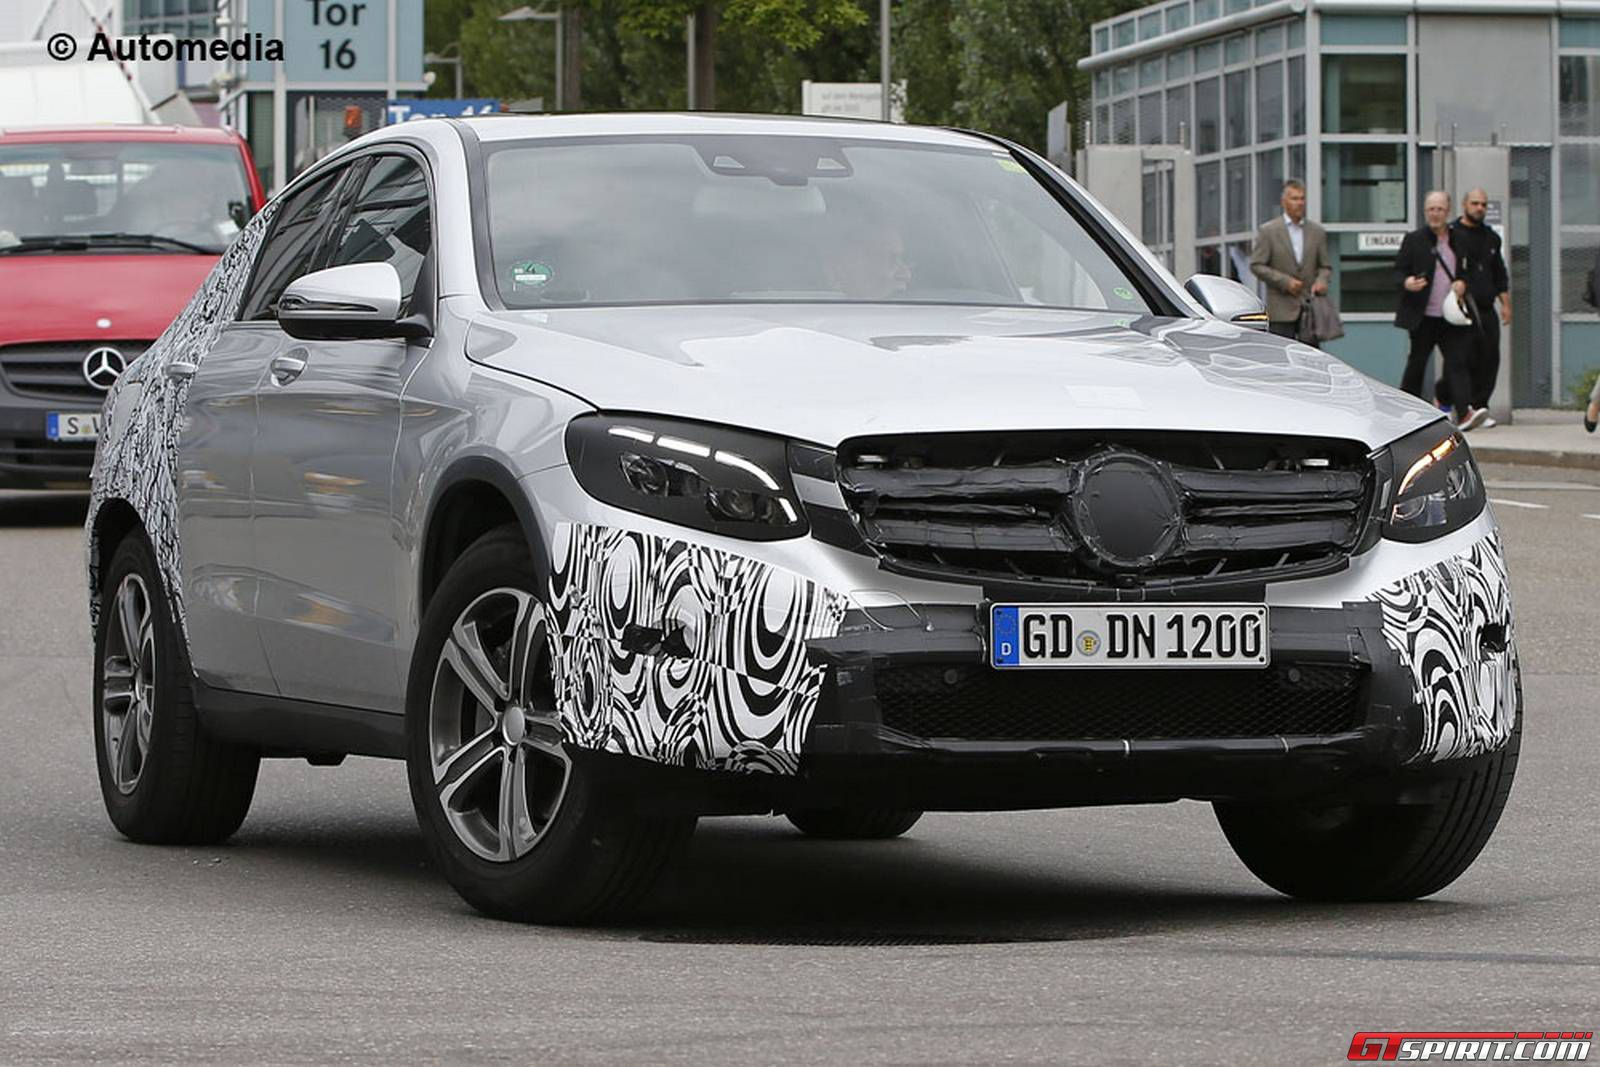 production spec mercedes benz glc coupe launching in 2016 gtspirit. Black Bedroom Furniture Sets. Home Design Ideas